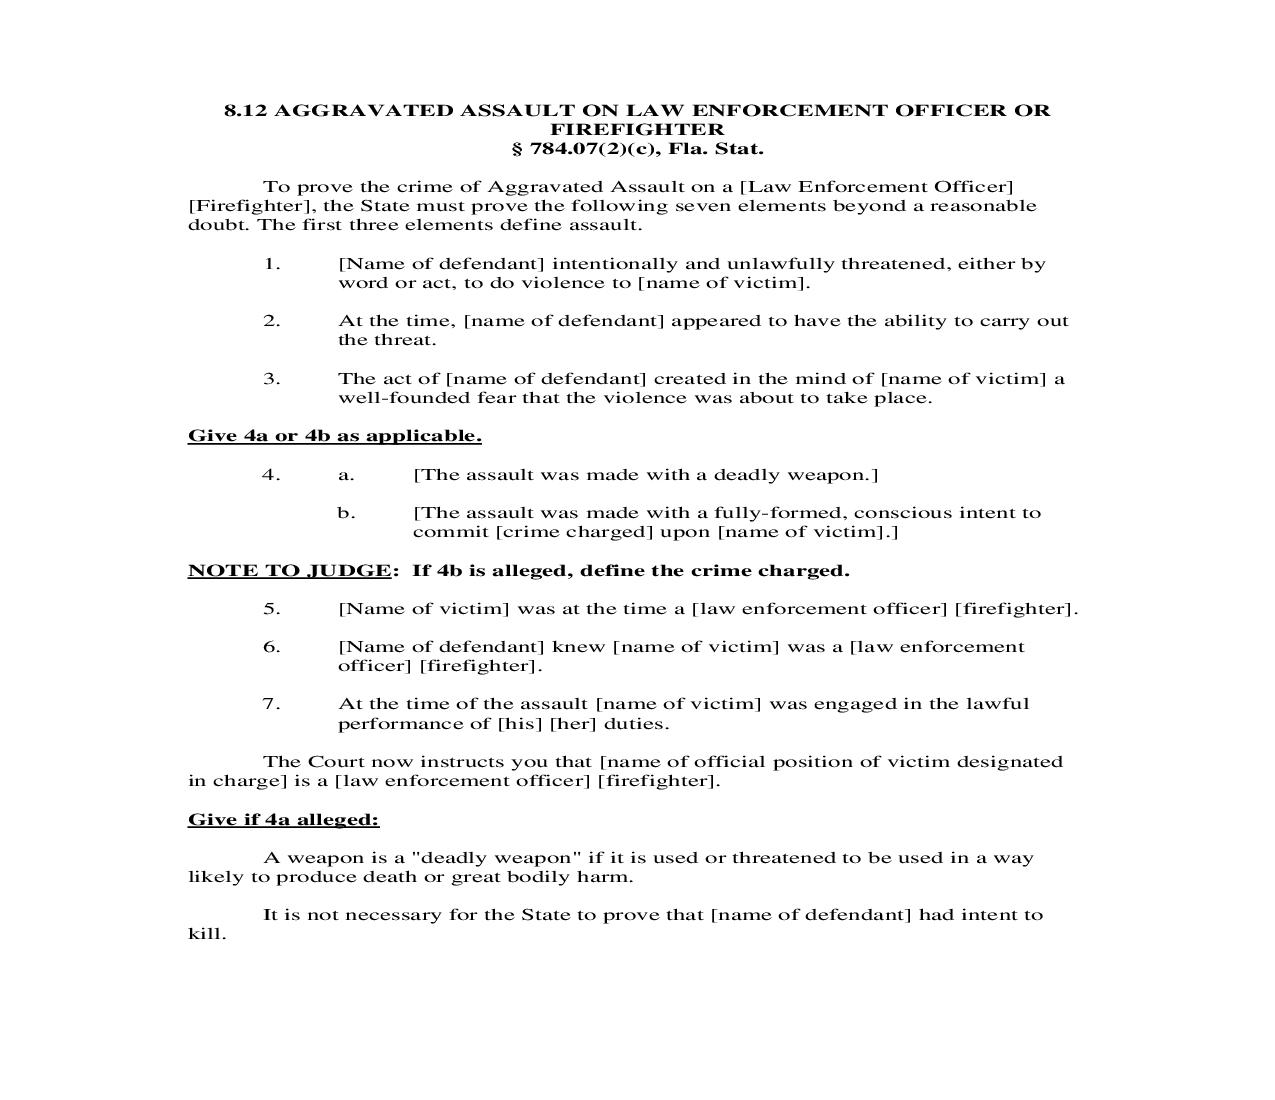 8.12. Aggravated Assault On Law Enforcement Officer Or Firefighter | Pdf Doc Docx | Florida_JI